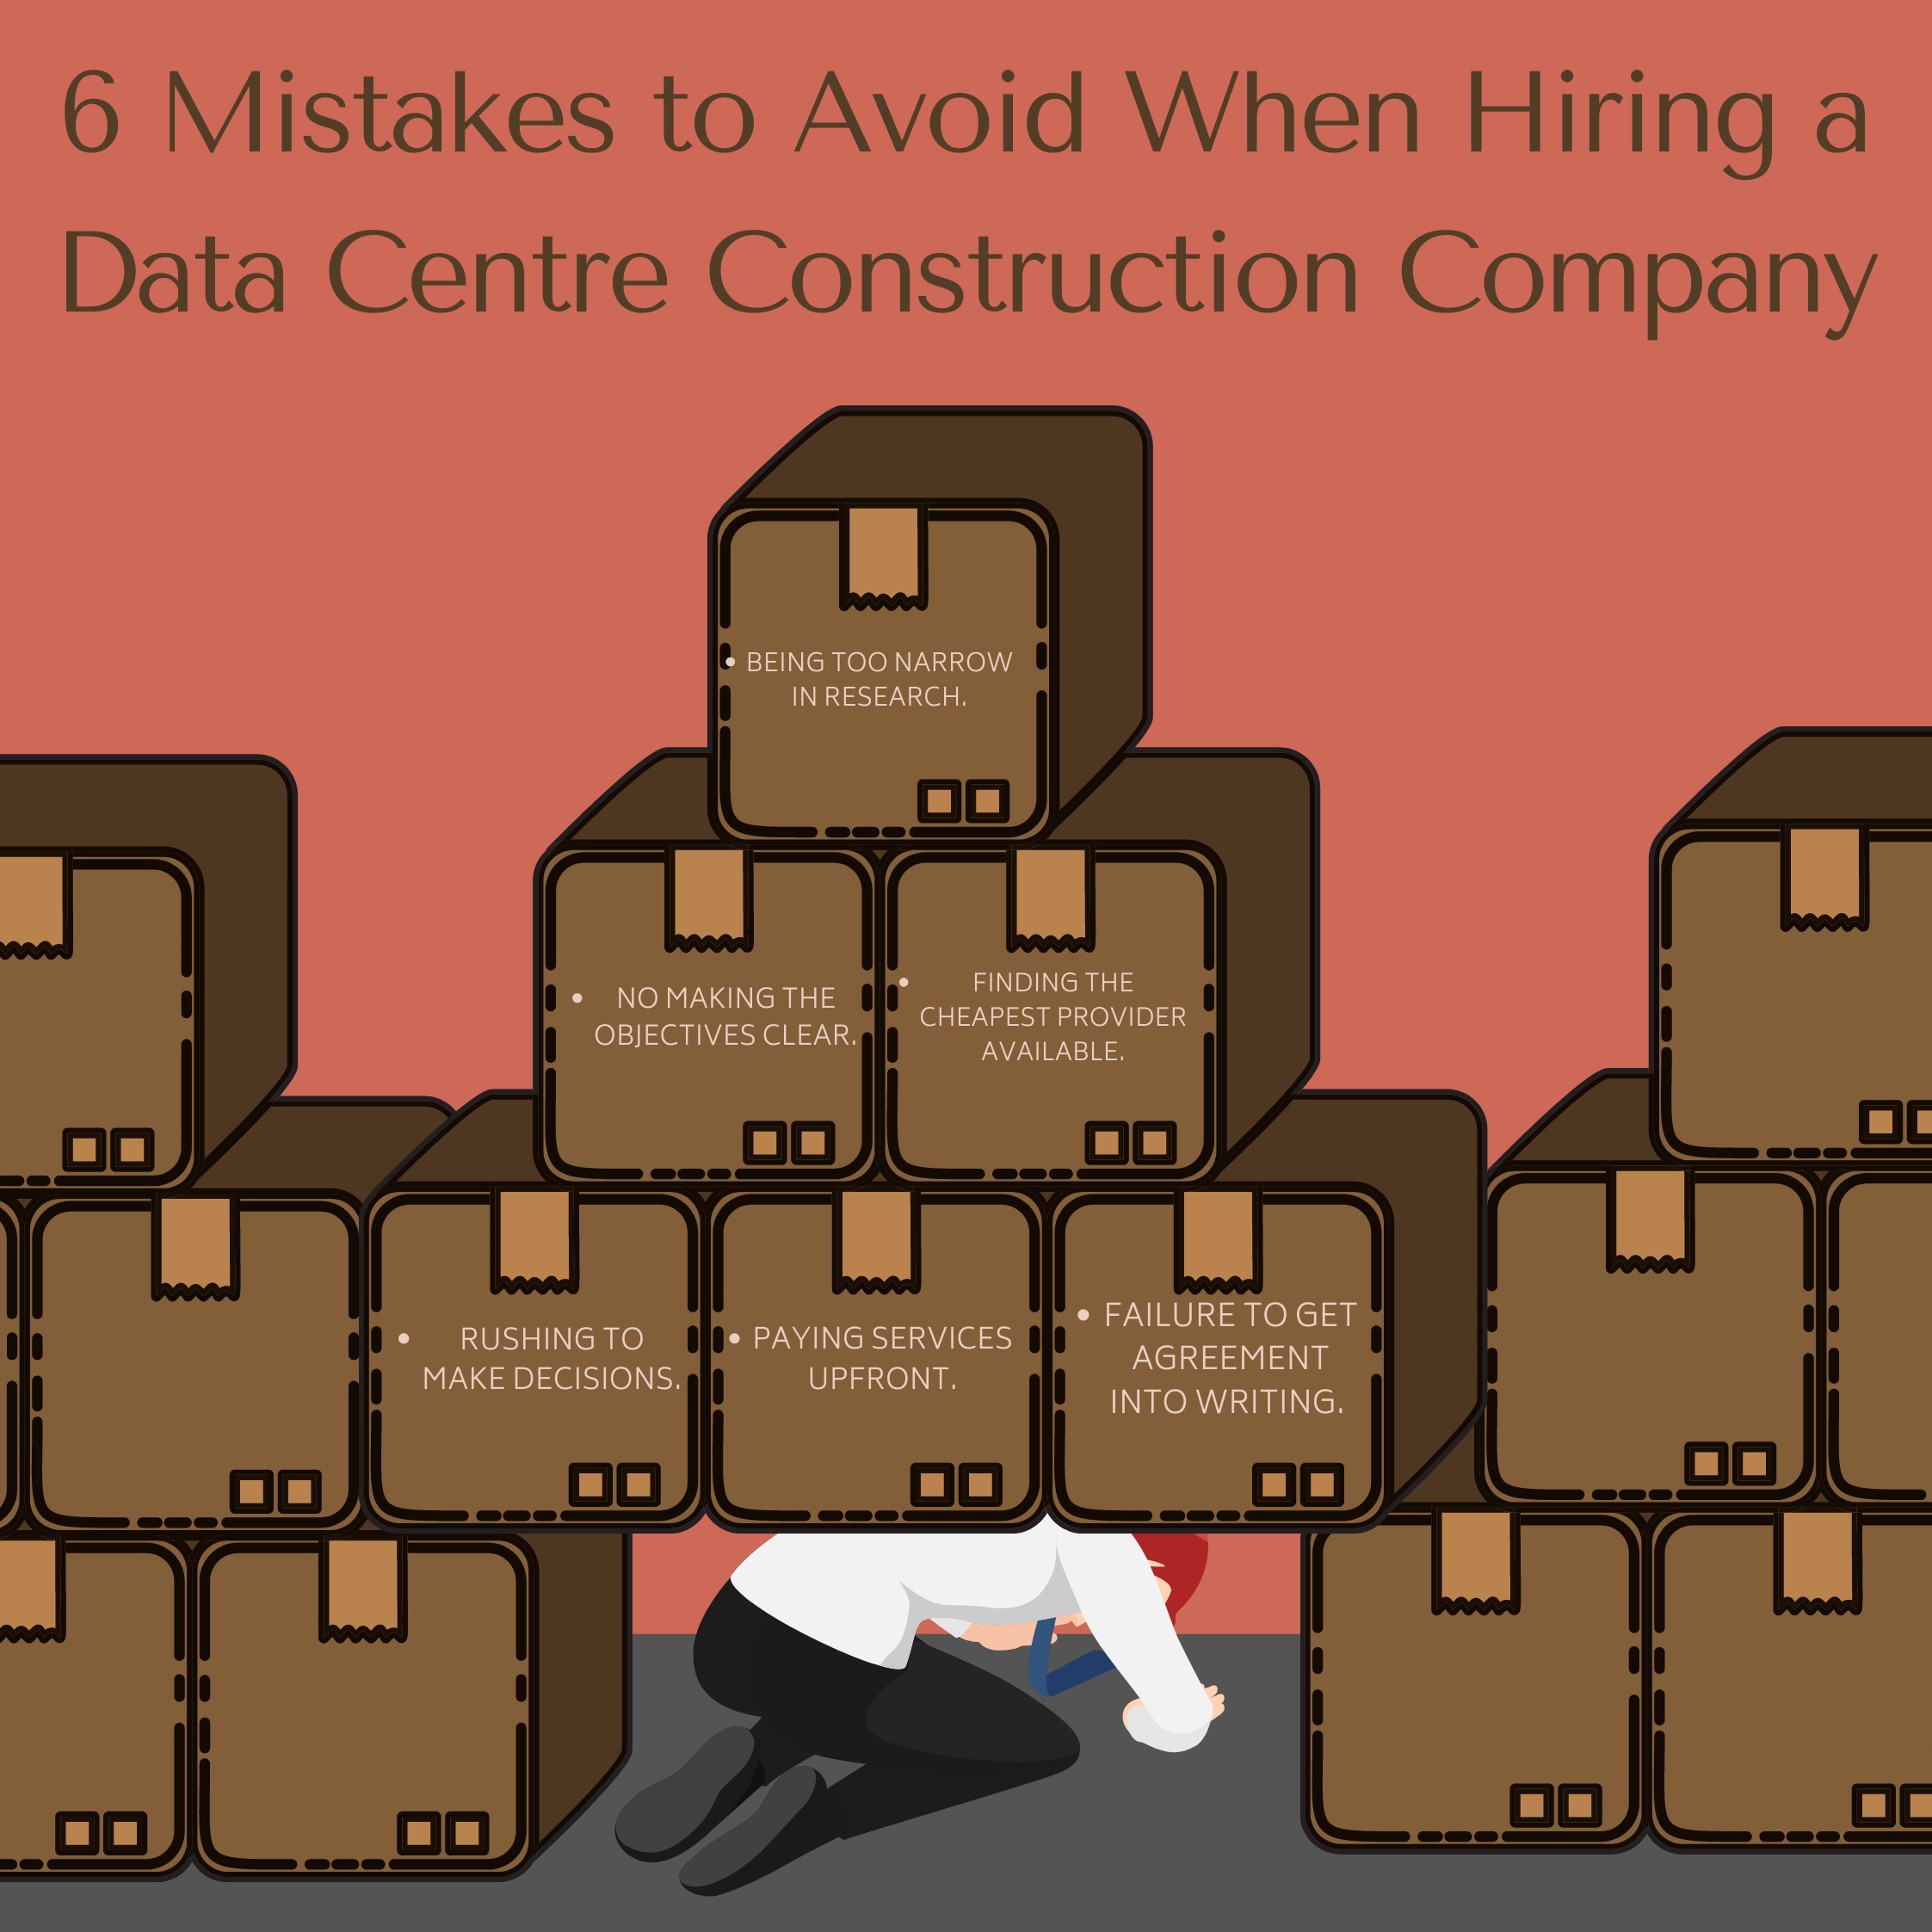 6-Mistakes-to-Avoid-When-Hiring-a-Data-Centre-Construction-Company